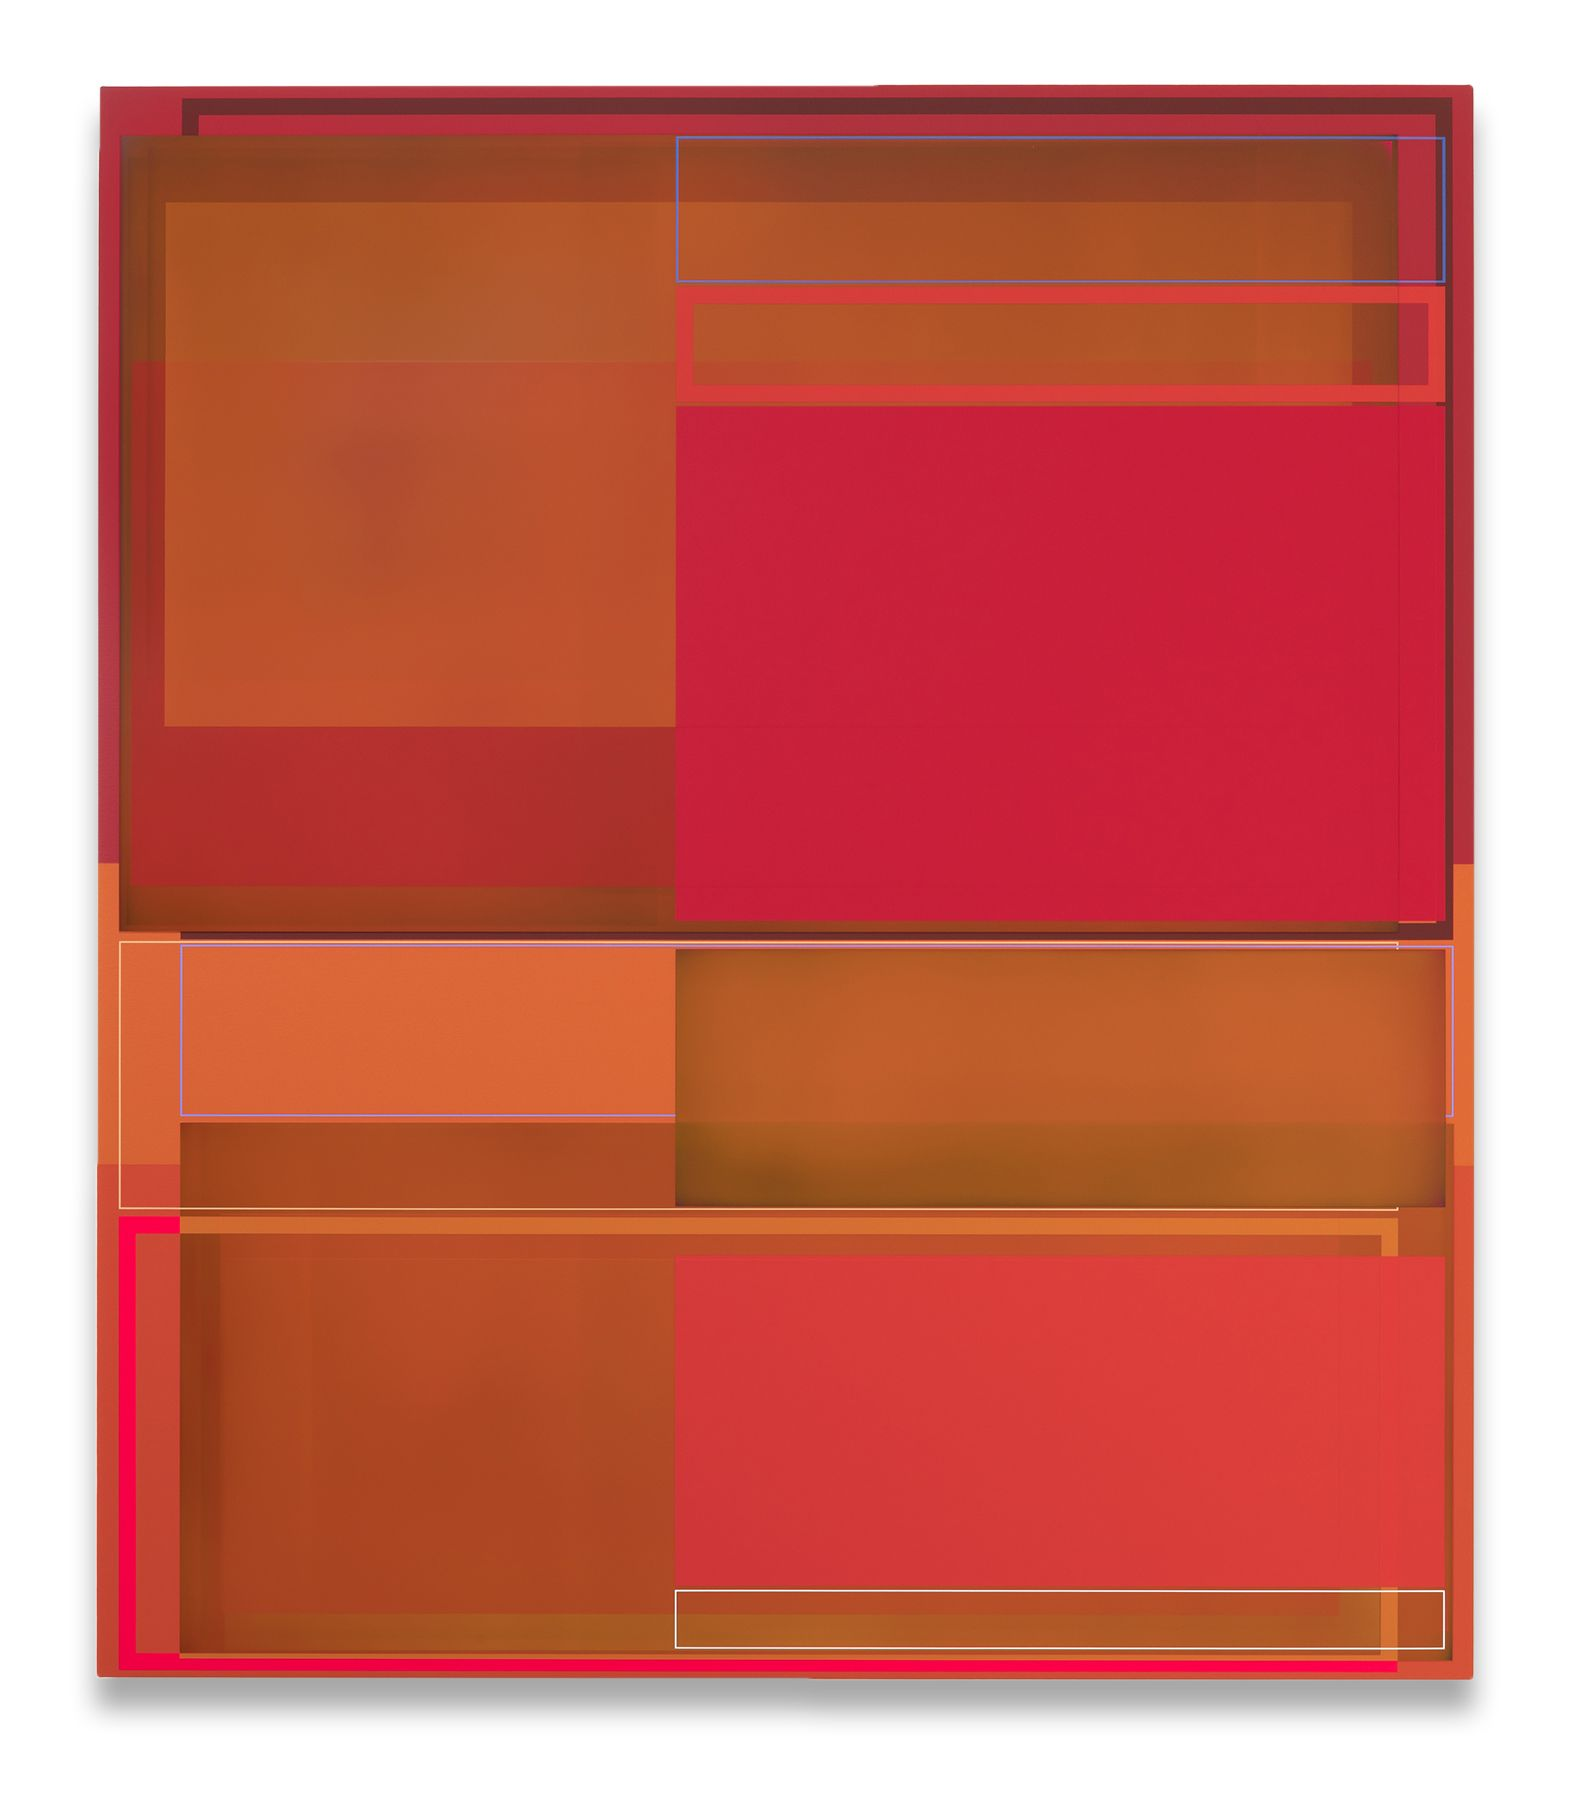 Patrick Wilson, Space Heater, 2018, Acrylic on canvas, 66 x 57 inches, 167.6 x 144.8 cm, MMG#30242